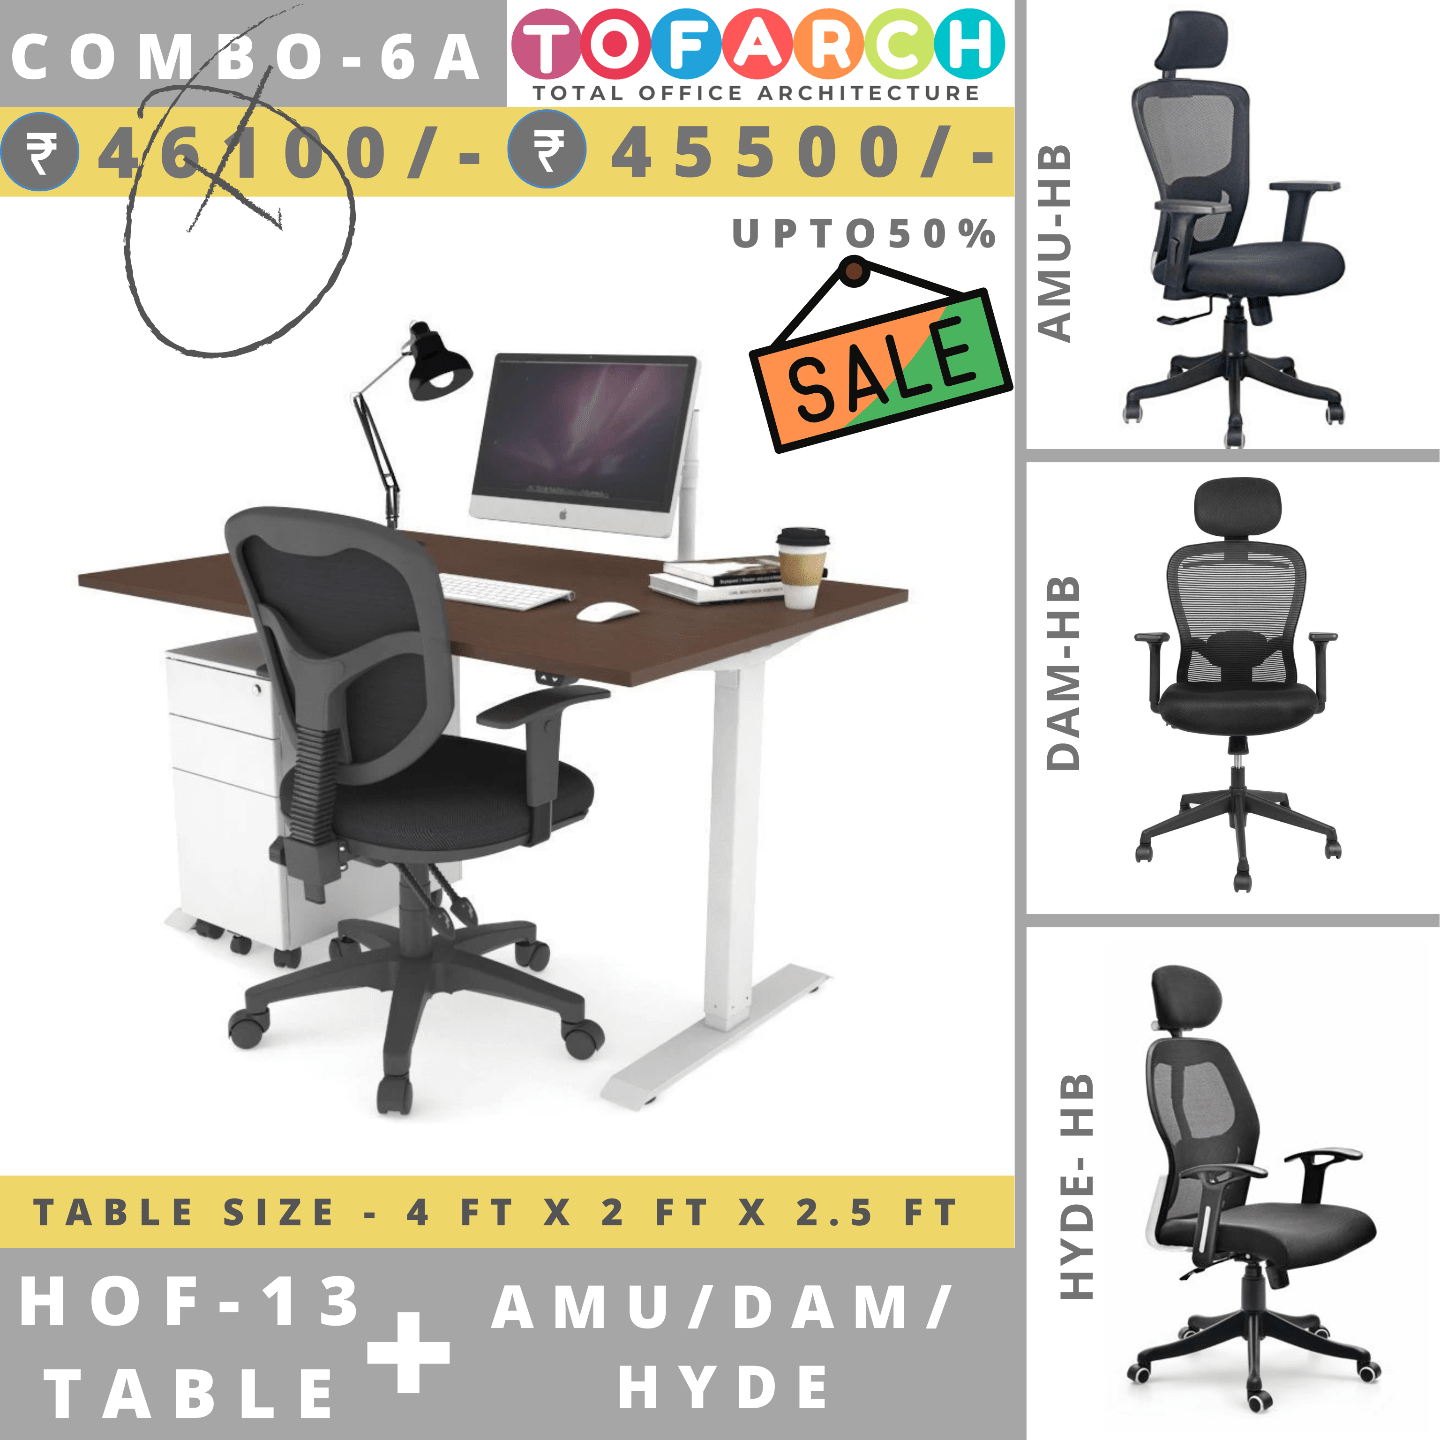 Table Chair Combo - 6A (HOF 13 Table + AMU / DAM / HYDE Chair)